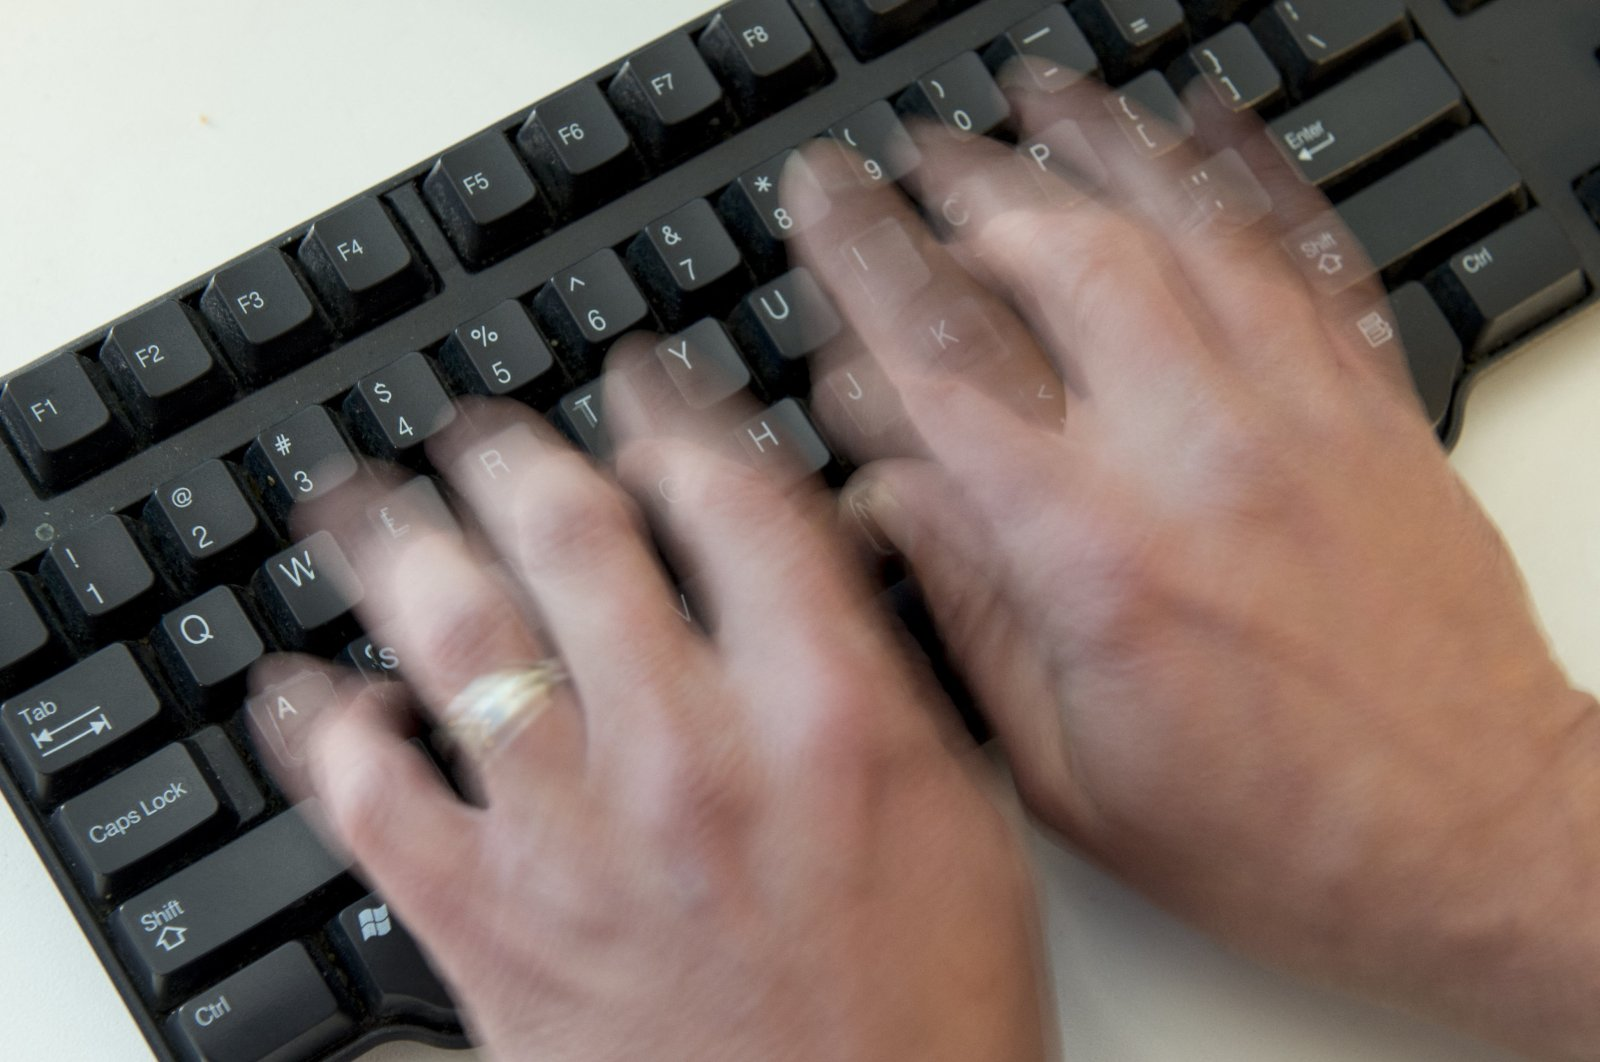 A person types on a computer keyboard, in Washington, D.C., U.S., Nov. 21, 2016. (AFP Photo)